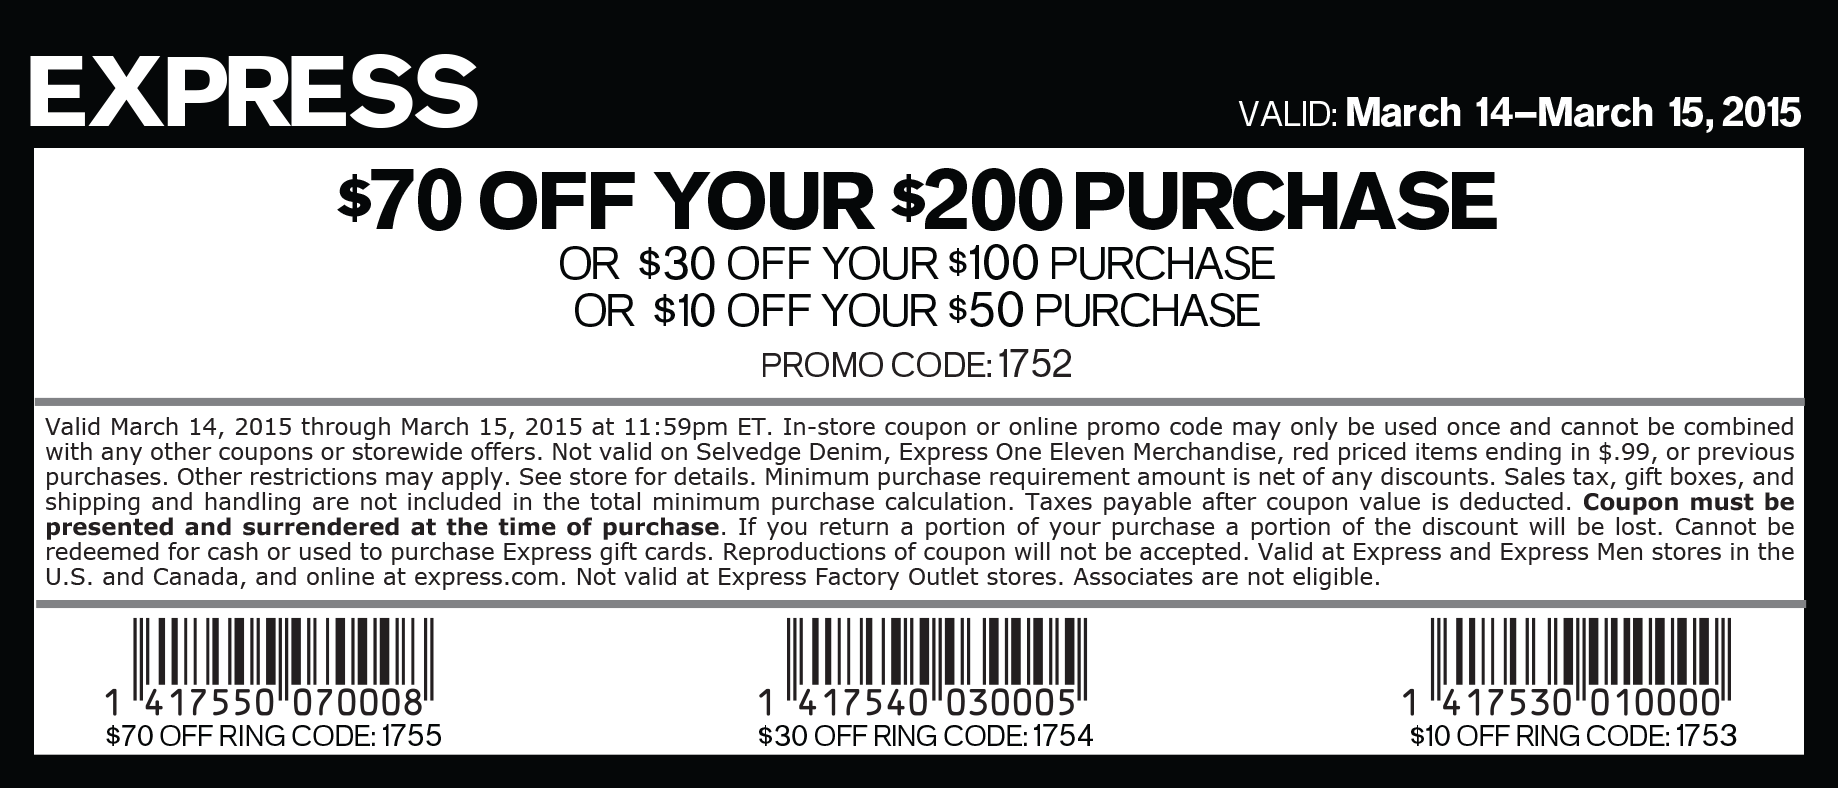 Express Coupons & Promo Codes | November Here are the hottest deals going on right now at Express. Click through and see what's hot today: Express coupons and limited-time sales are often listed right at the top of the page or just below, and beautiful new collections appear if you scroll down/5(23).